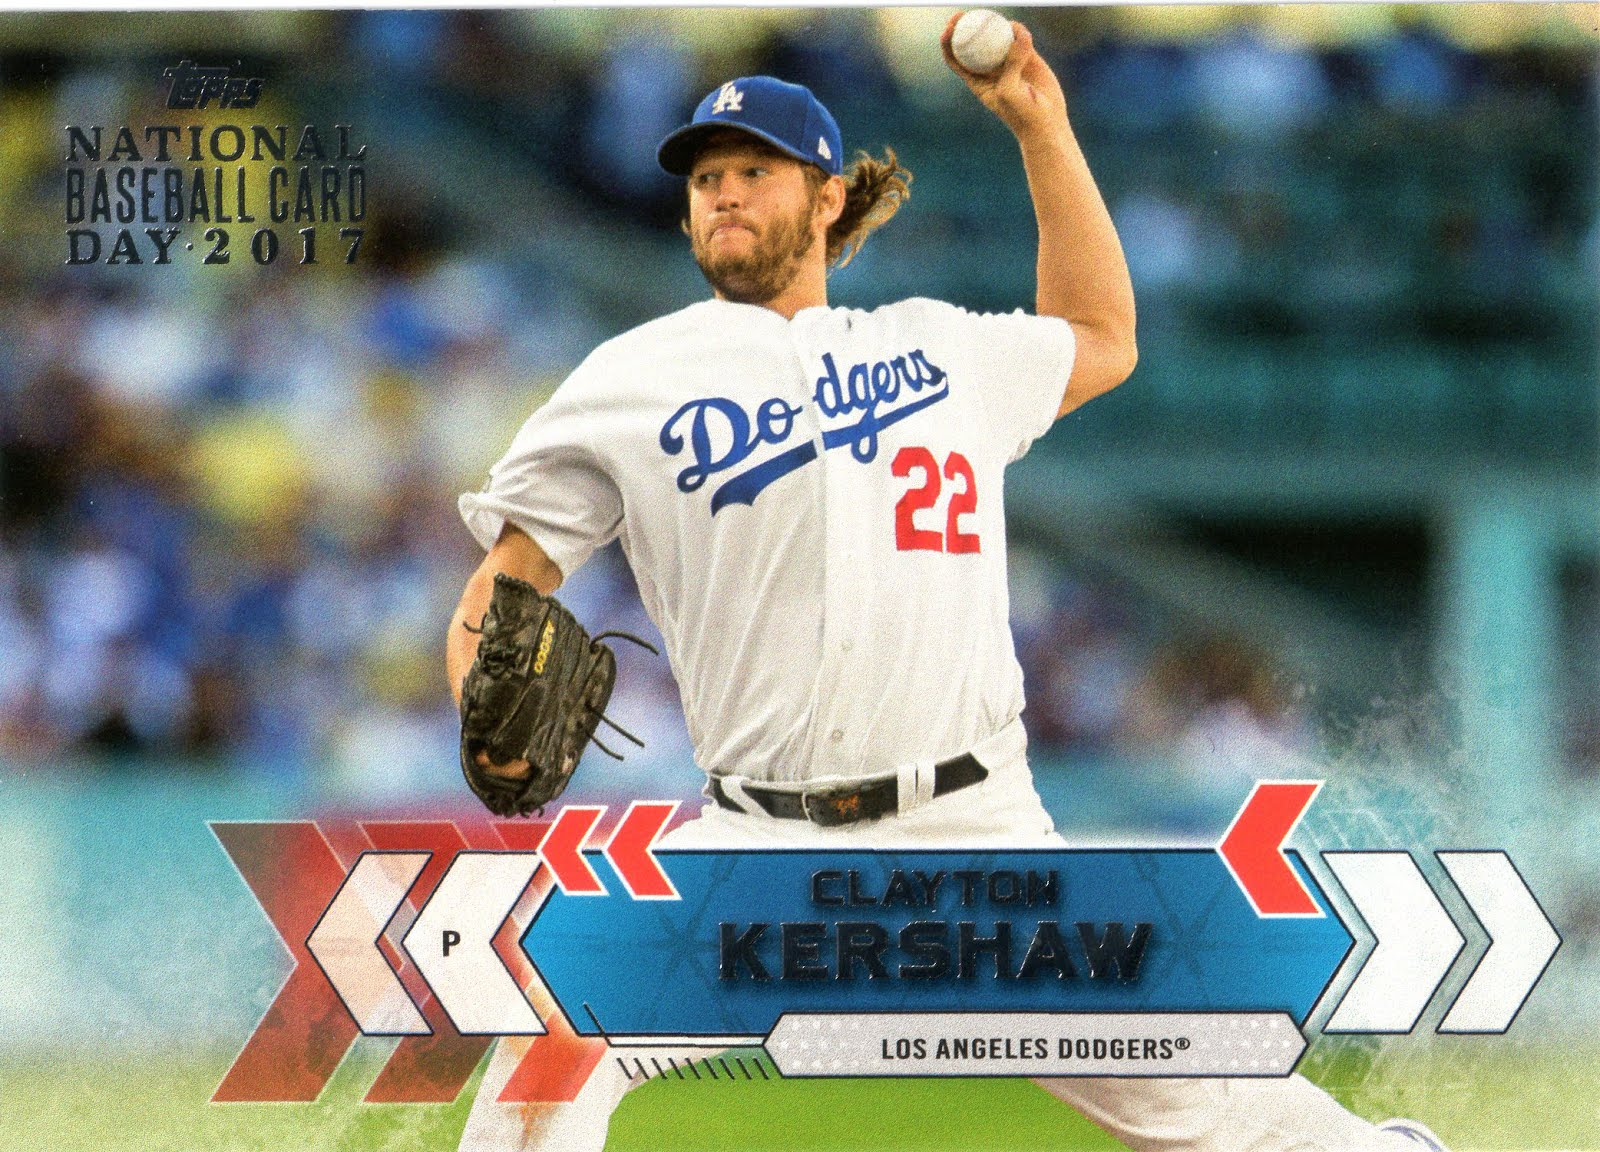 2017 Topps National Baseball Card Day Promo Cards All The